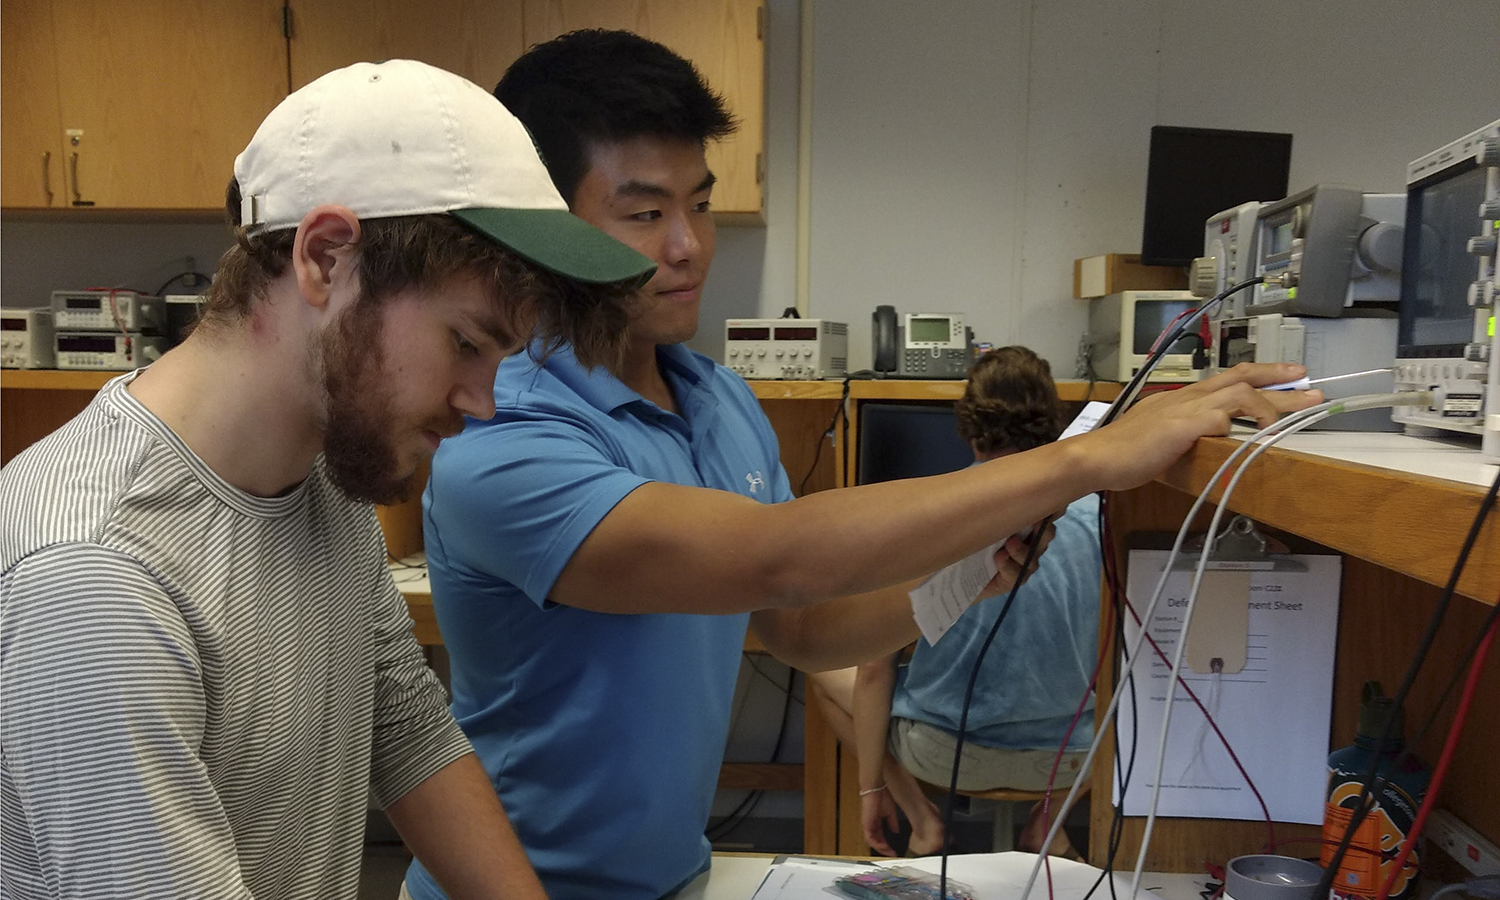 Daniel Choe '16 and James Monaco '20 in an electrical engineering course. Choe and Monaco are both participating in the Dartmouth joint degree program this summer with Choe working as a TA post grad at Dartmouth.